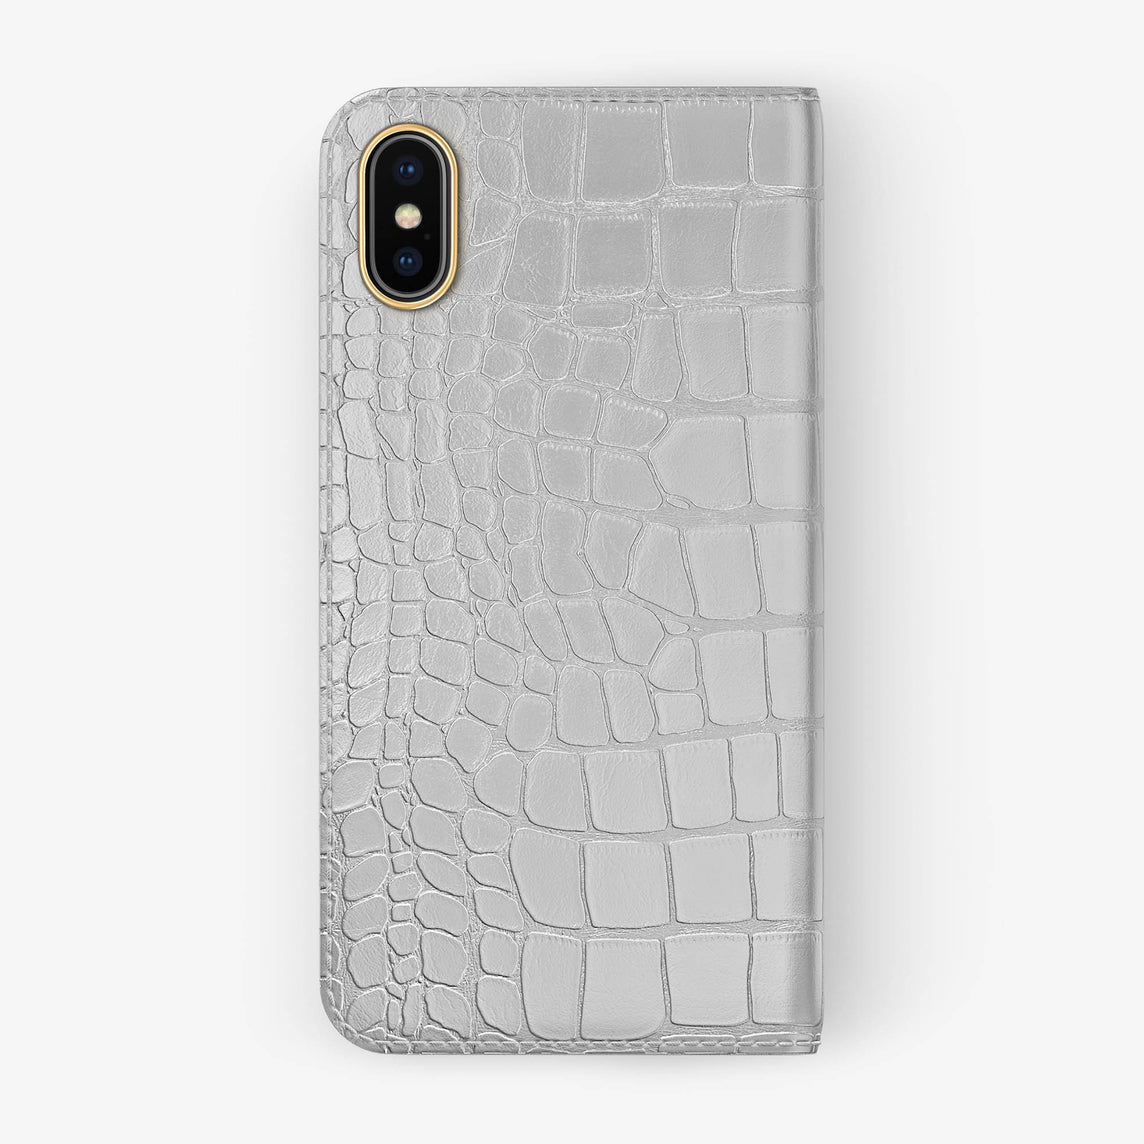 White Alligator iPhone Folio Case for iPhone X finishing yellow gold - Hadoro Luxury Cases